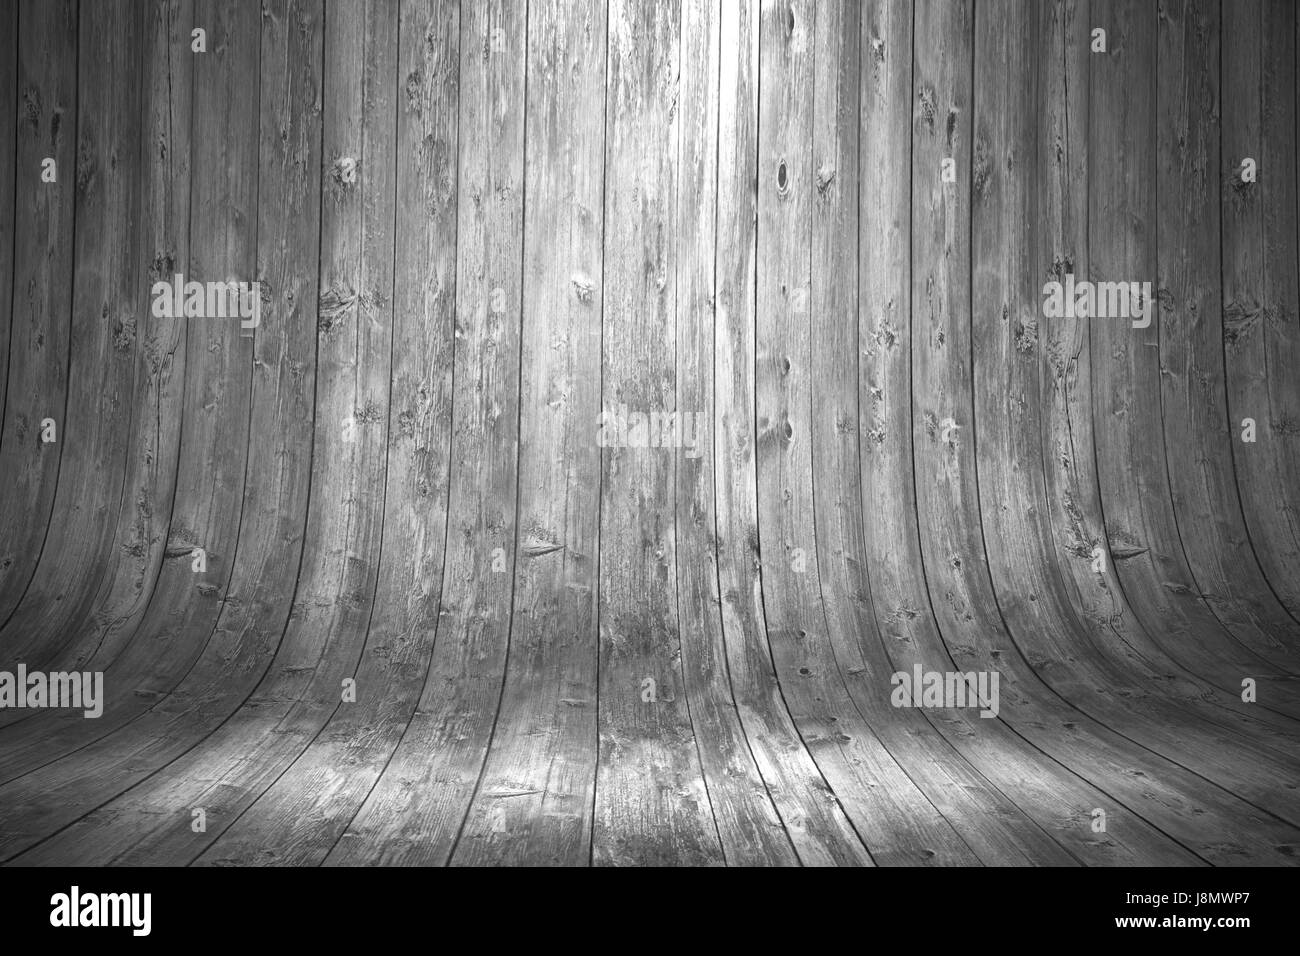 Old grungy grey curved wooden background with shining lamp on top - Stock Image